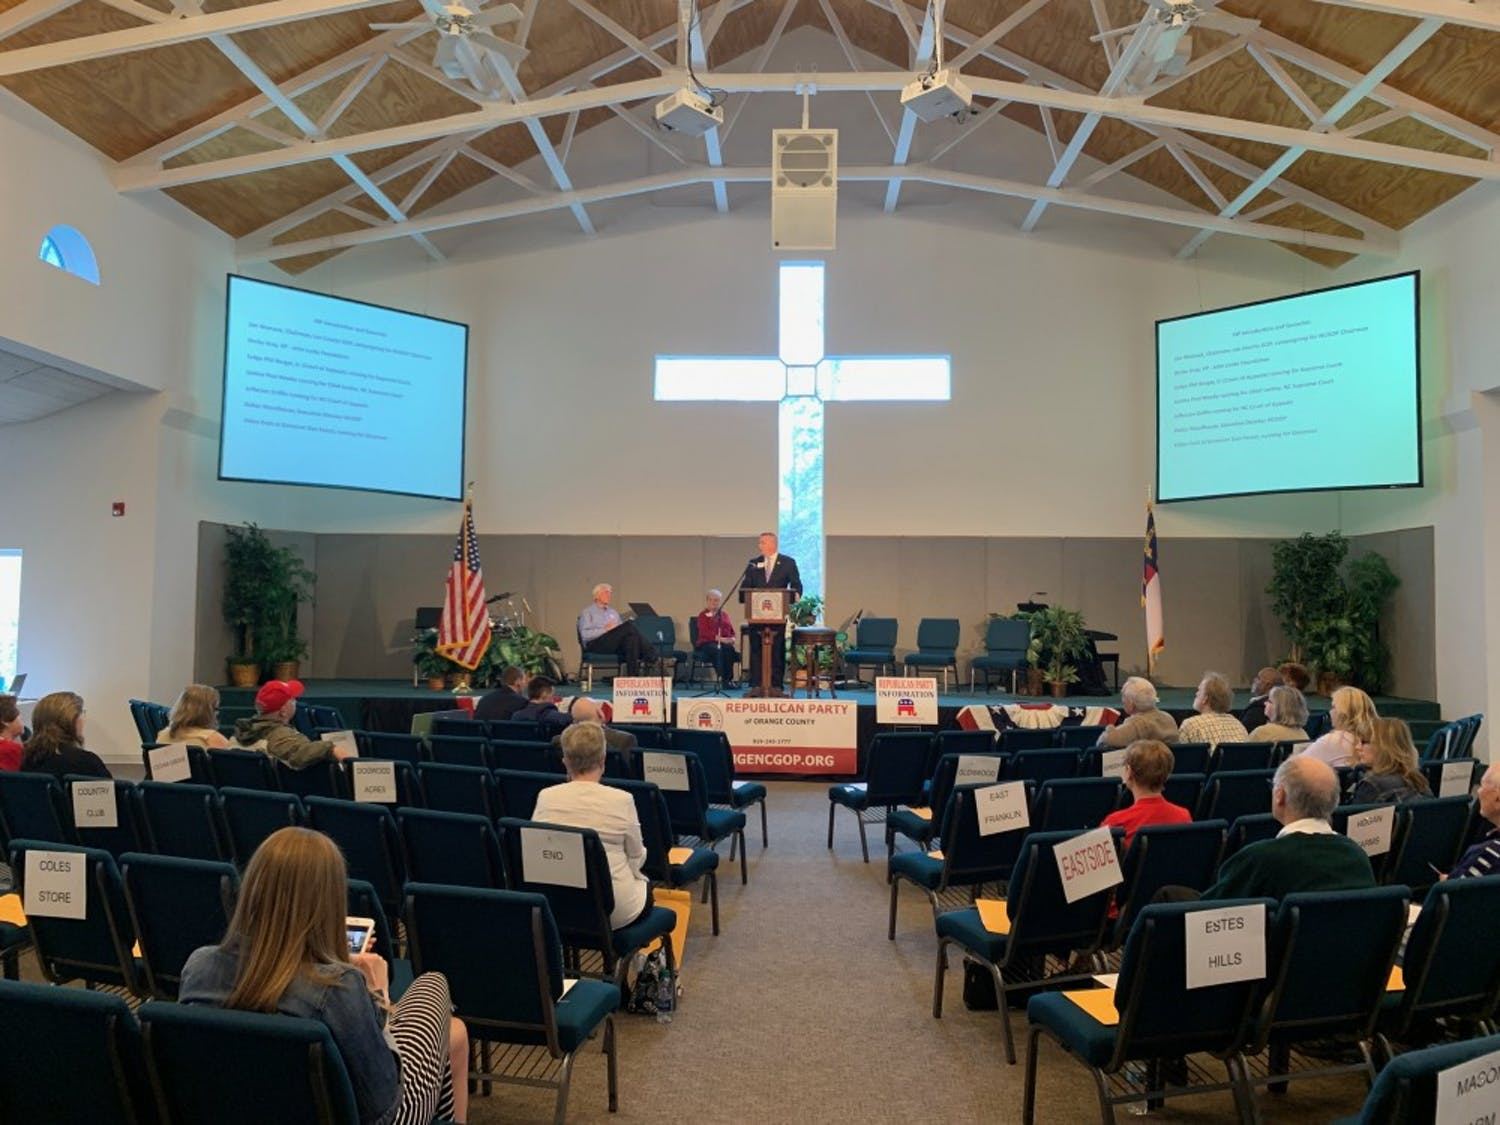 Phil Berger speaks at the Orange County Republicans Convention about his campaign for N.C. Supreme Court. The convention was at Sunrise Church on Saturday, March 30, 2019.